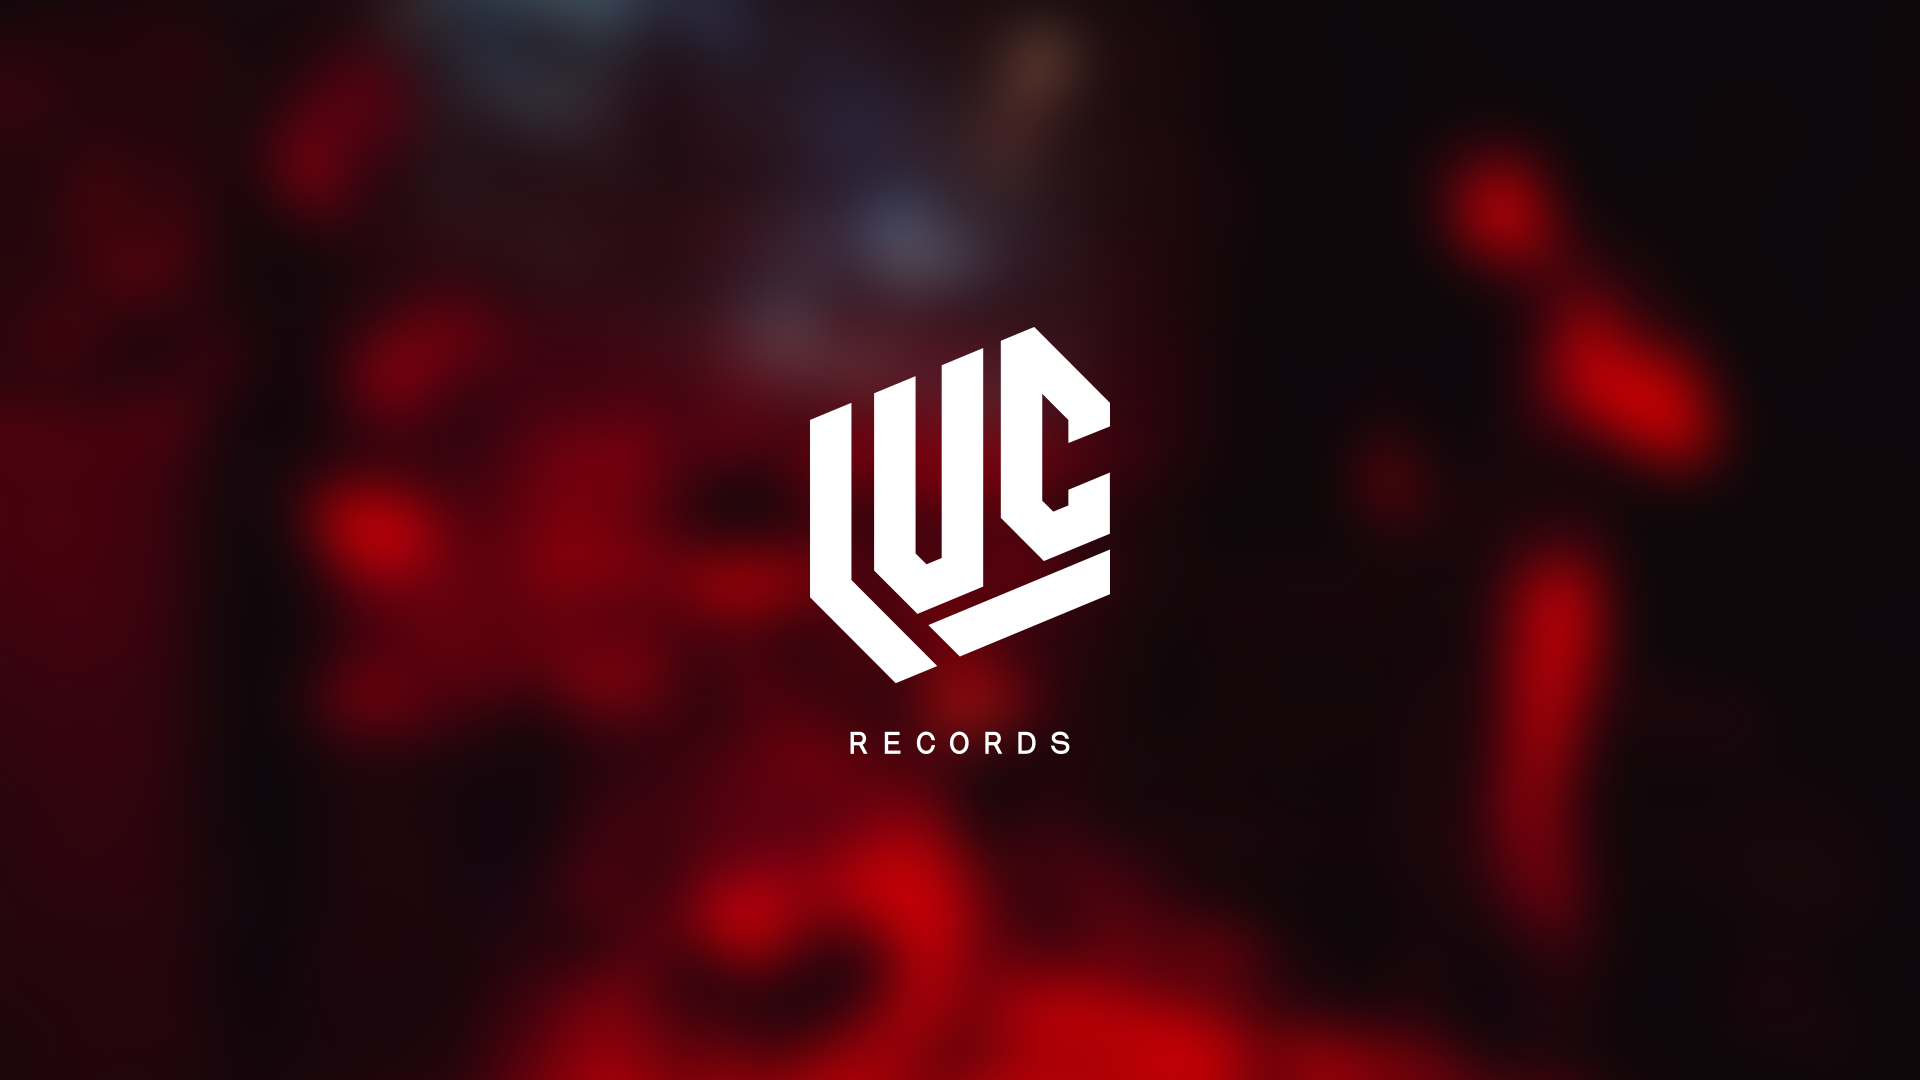 Luc Records Logo Design